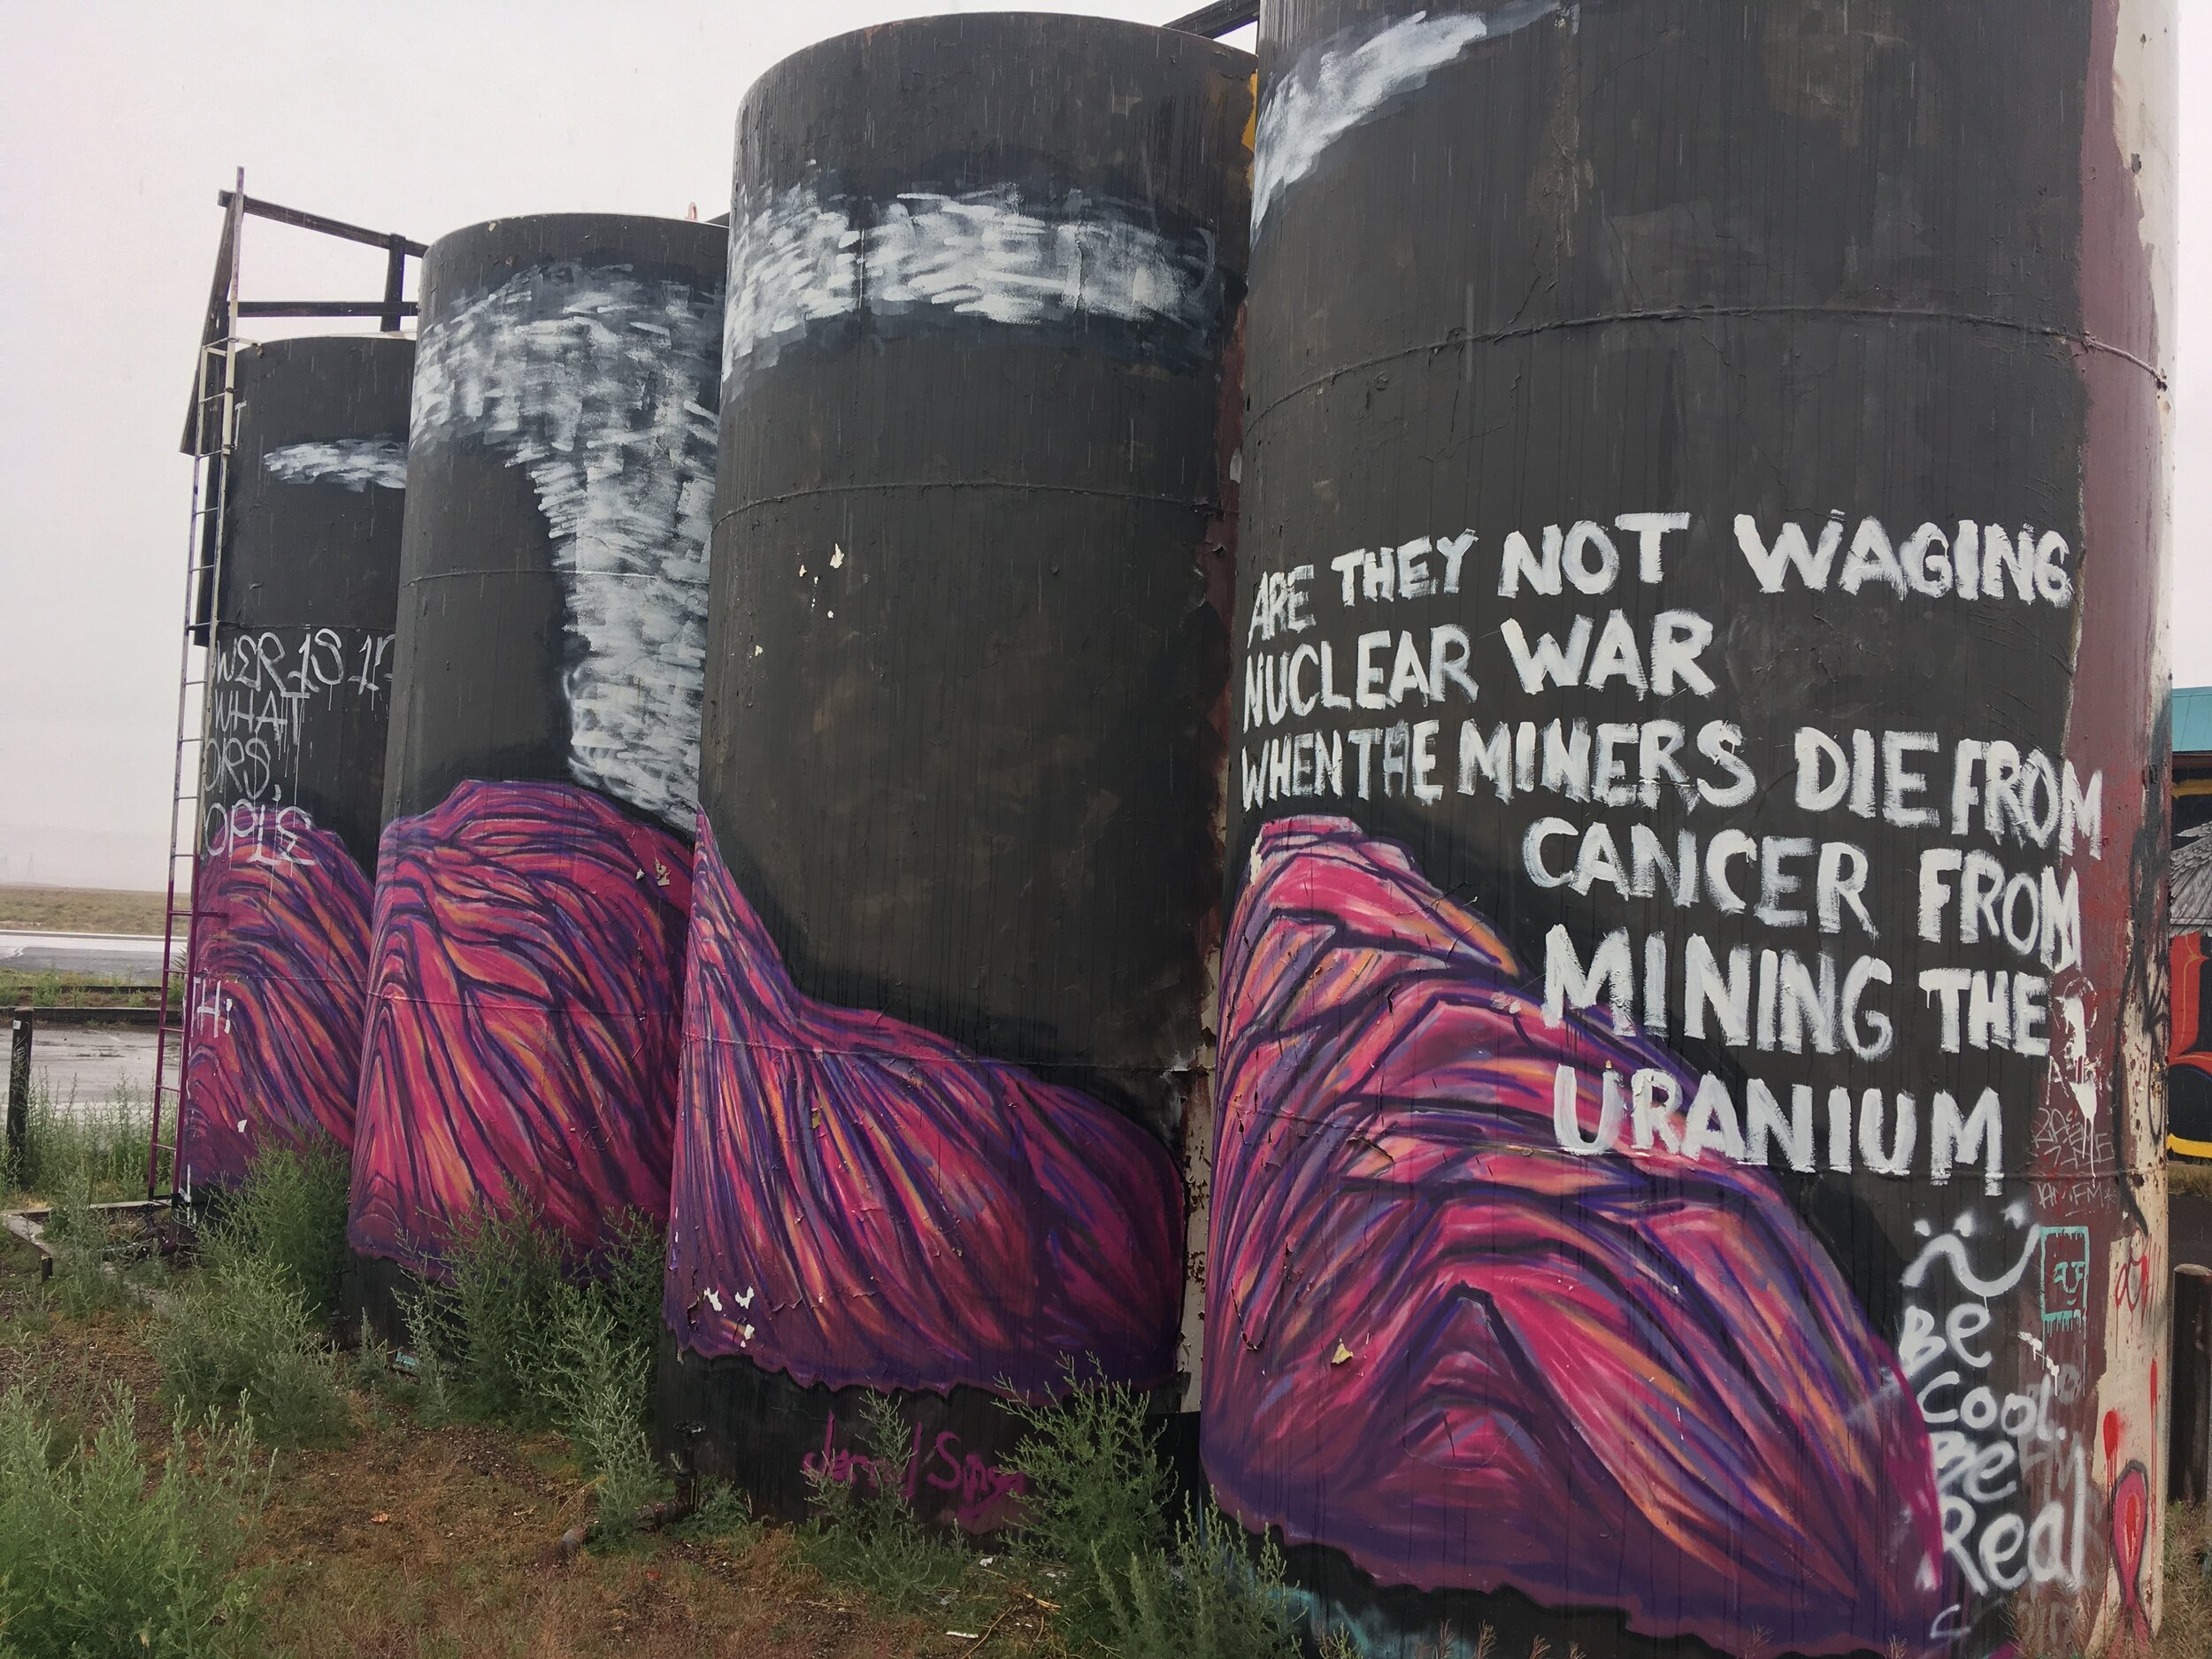 """Artist Jerrel Singer's mural near Grey Mountain, Arizona on the lands of the Navajo Nation. """"Are they not waging nuclear war when the miners die from cancer from mining the uranium?""""  Read more about Jerrel's work"""